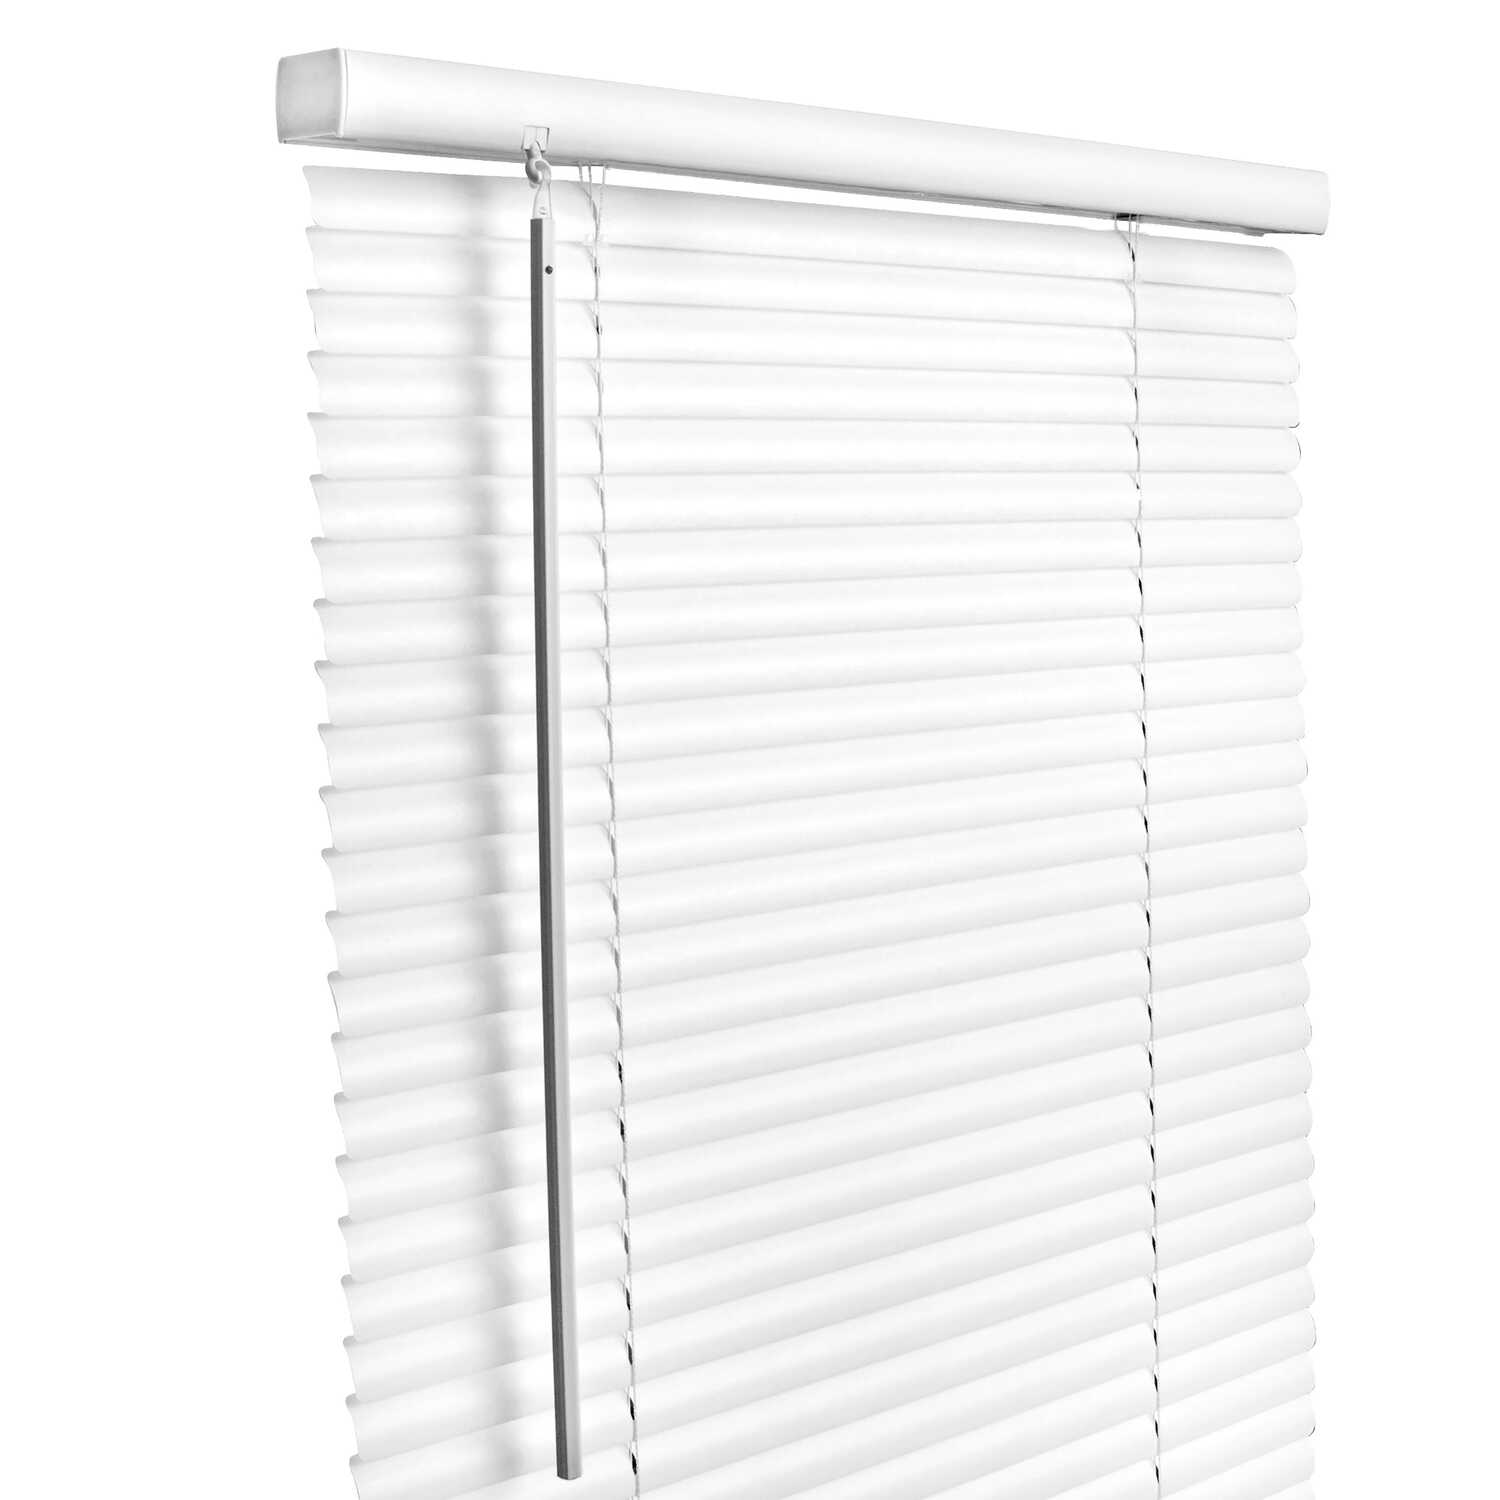 Living Accents  Vinyl  1 in. Mini-Blinds  72 in. W x 64 in. H White  Cordless